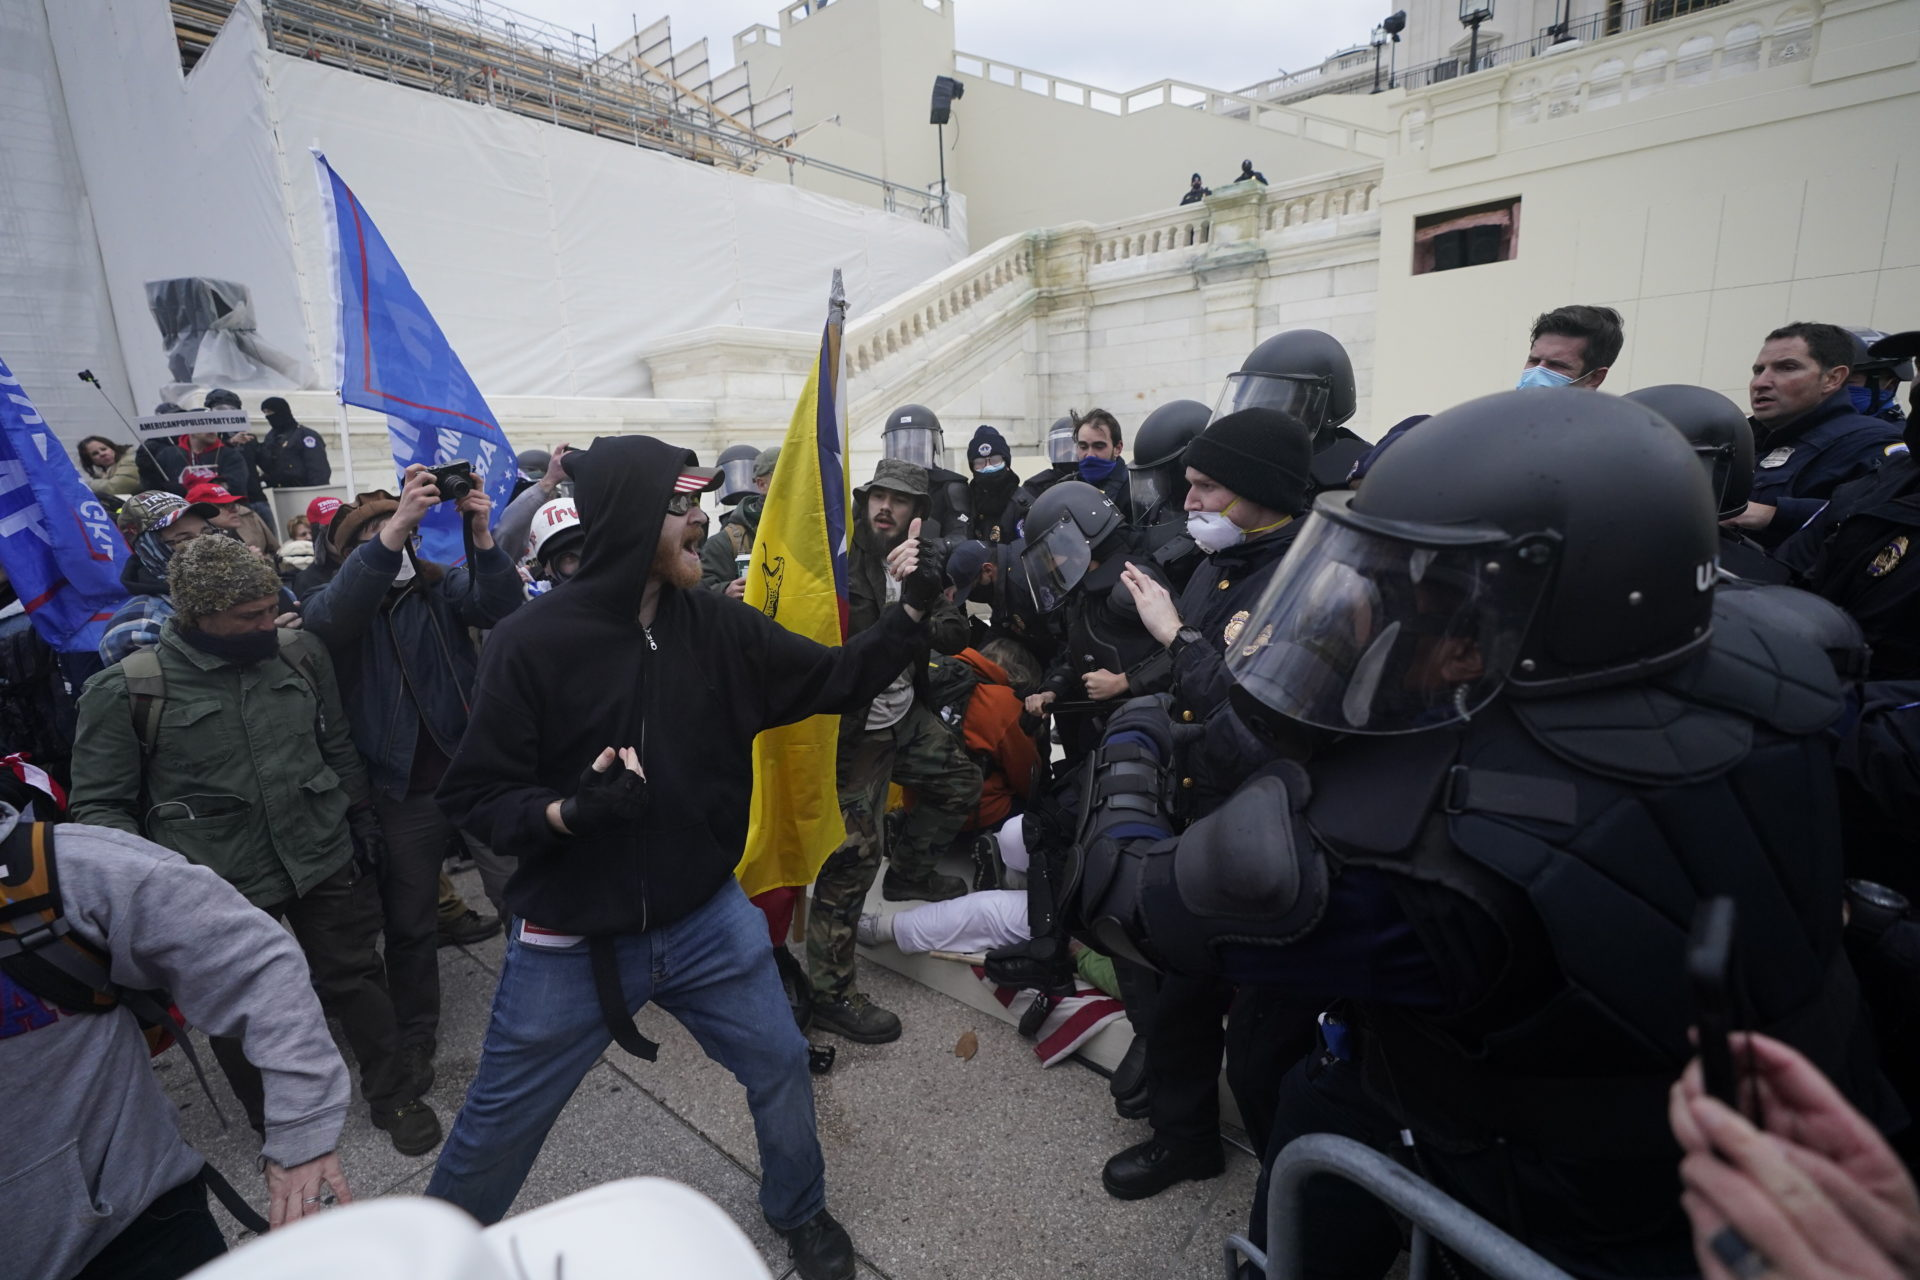 Trump supporters try to break through a police barrier at the Capitol in Washington. (Julio Cortez/AP)